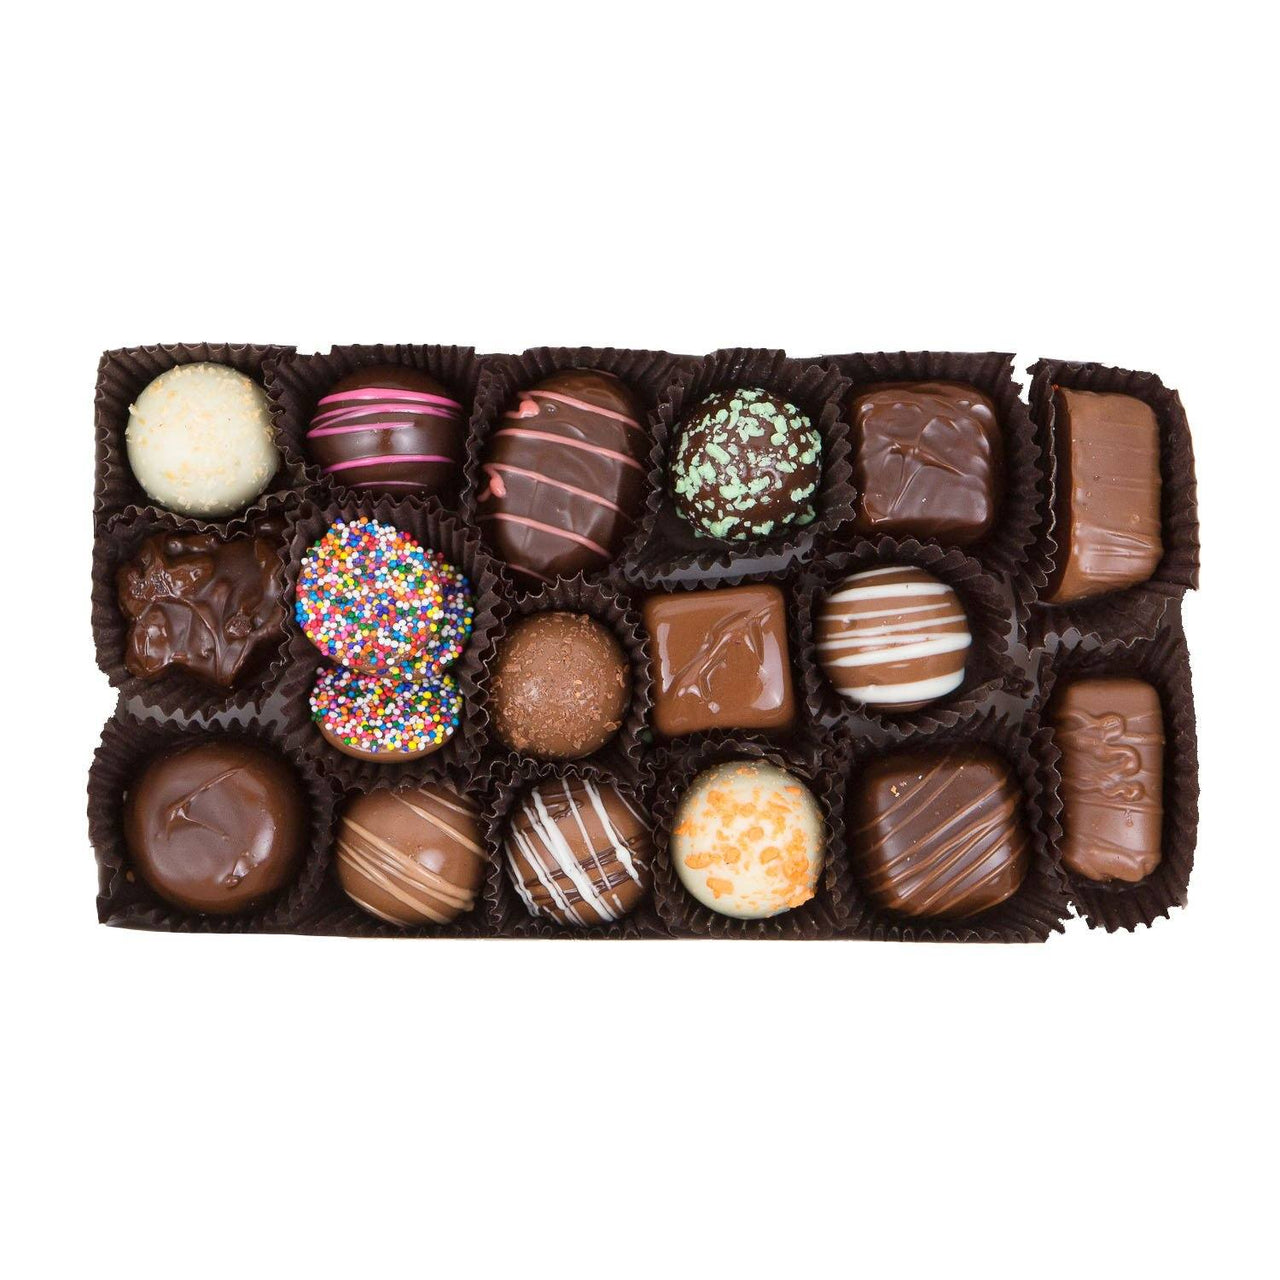 Gifts for Her - Assorted Chocolate Gift Box - Jackie's Chocolate (1487133507619)